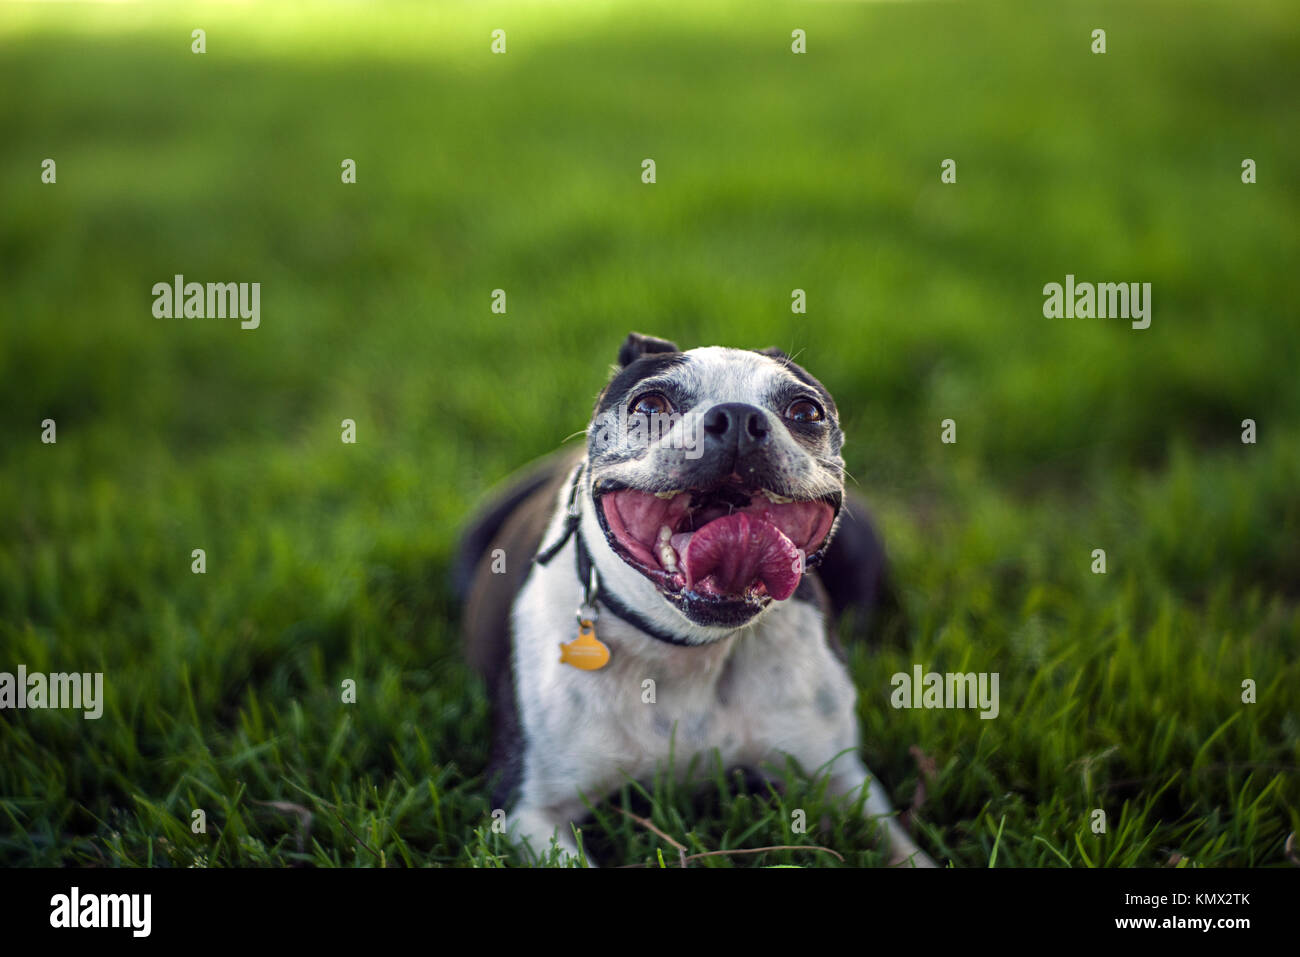 Smiling French Bulldog Lying on Grass Playing Fetch in a City Dog Park with a Blurry Background Stock Photo